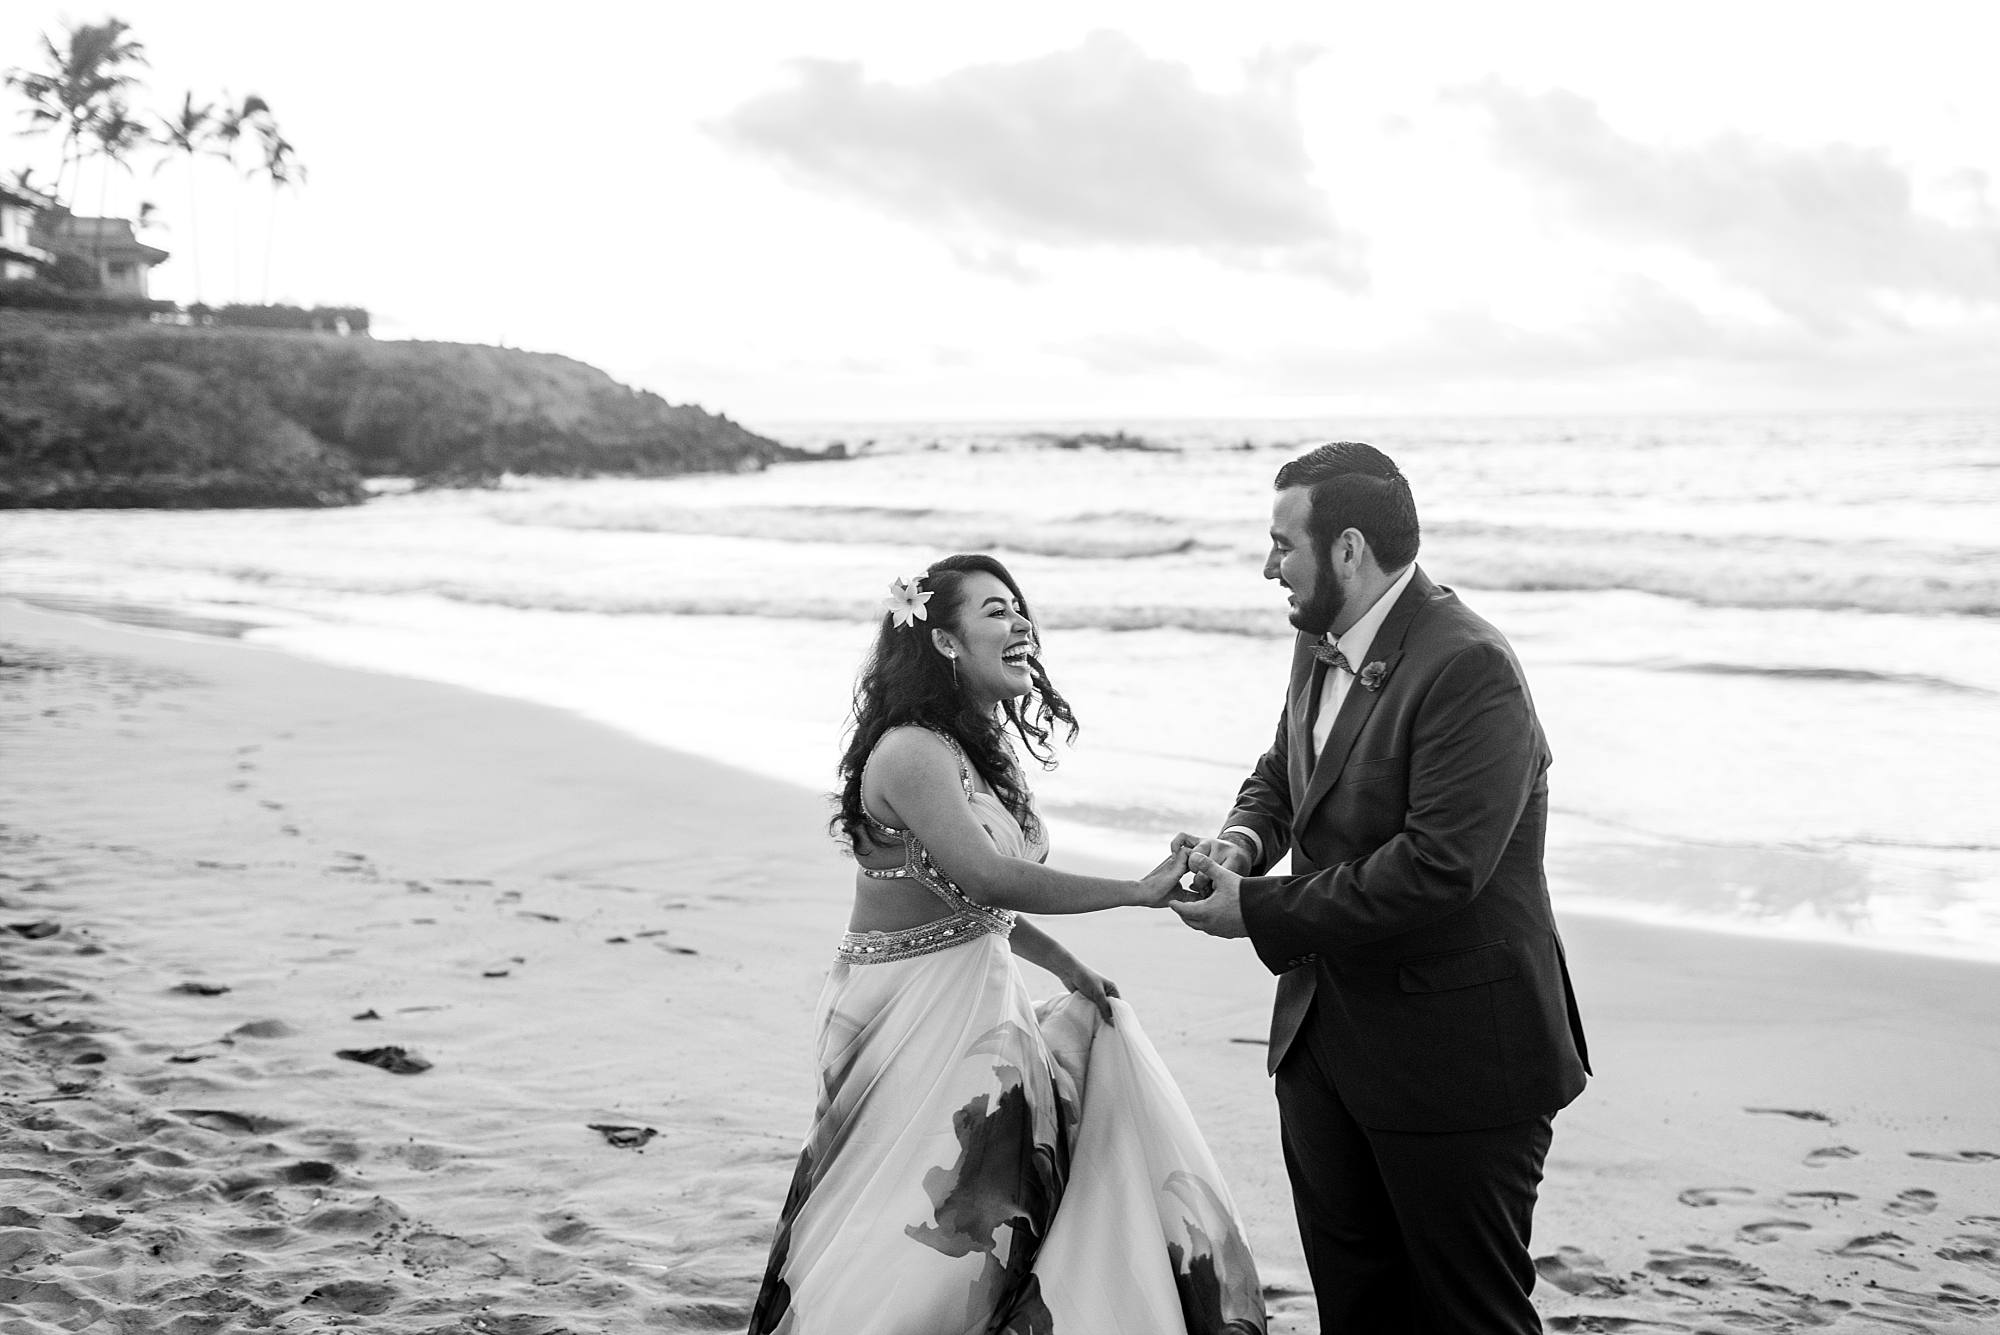 bride- and groom-to-be dancing on beach